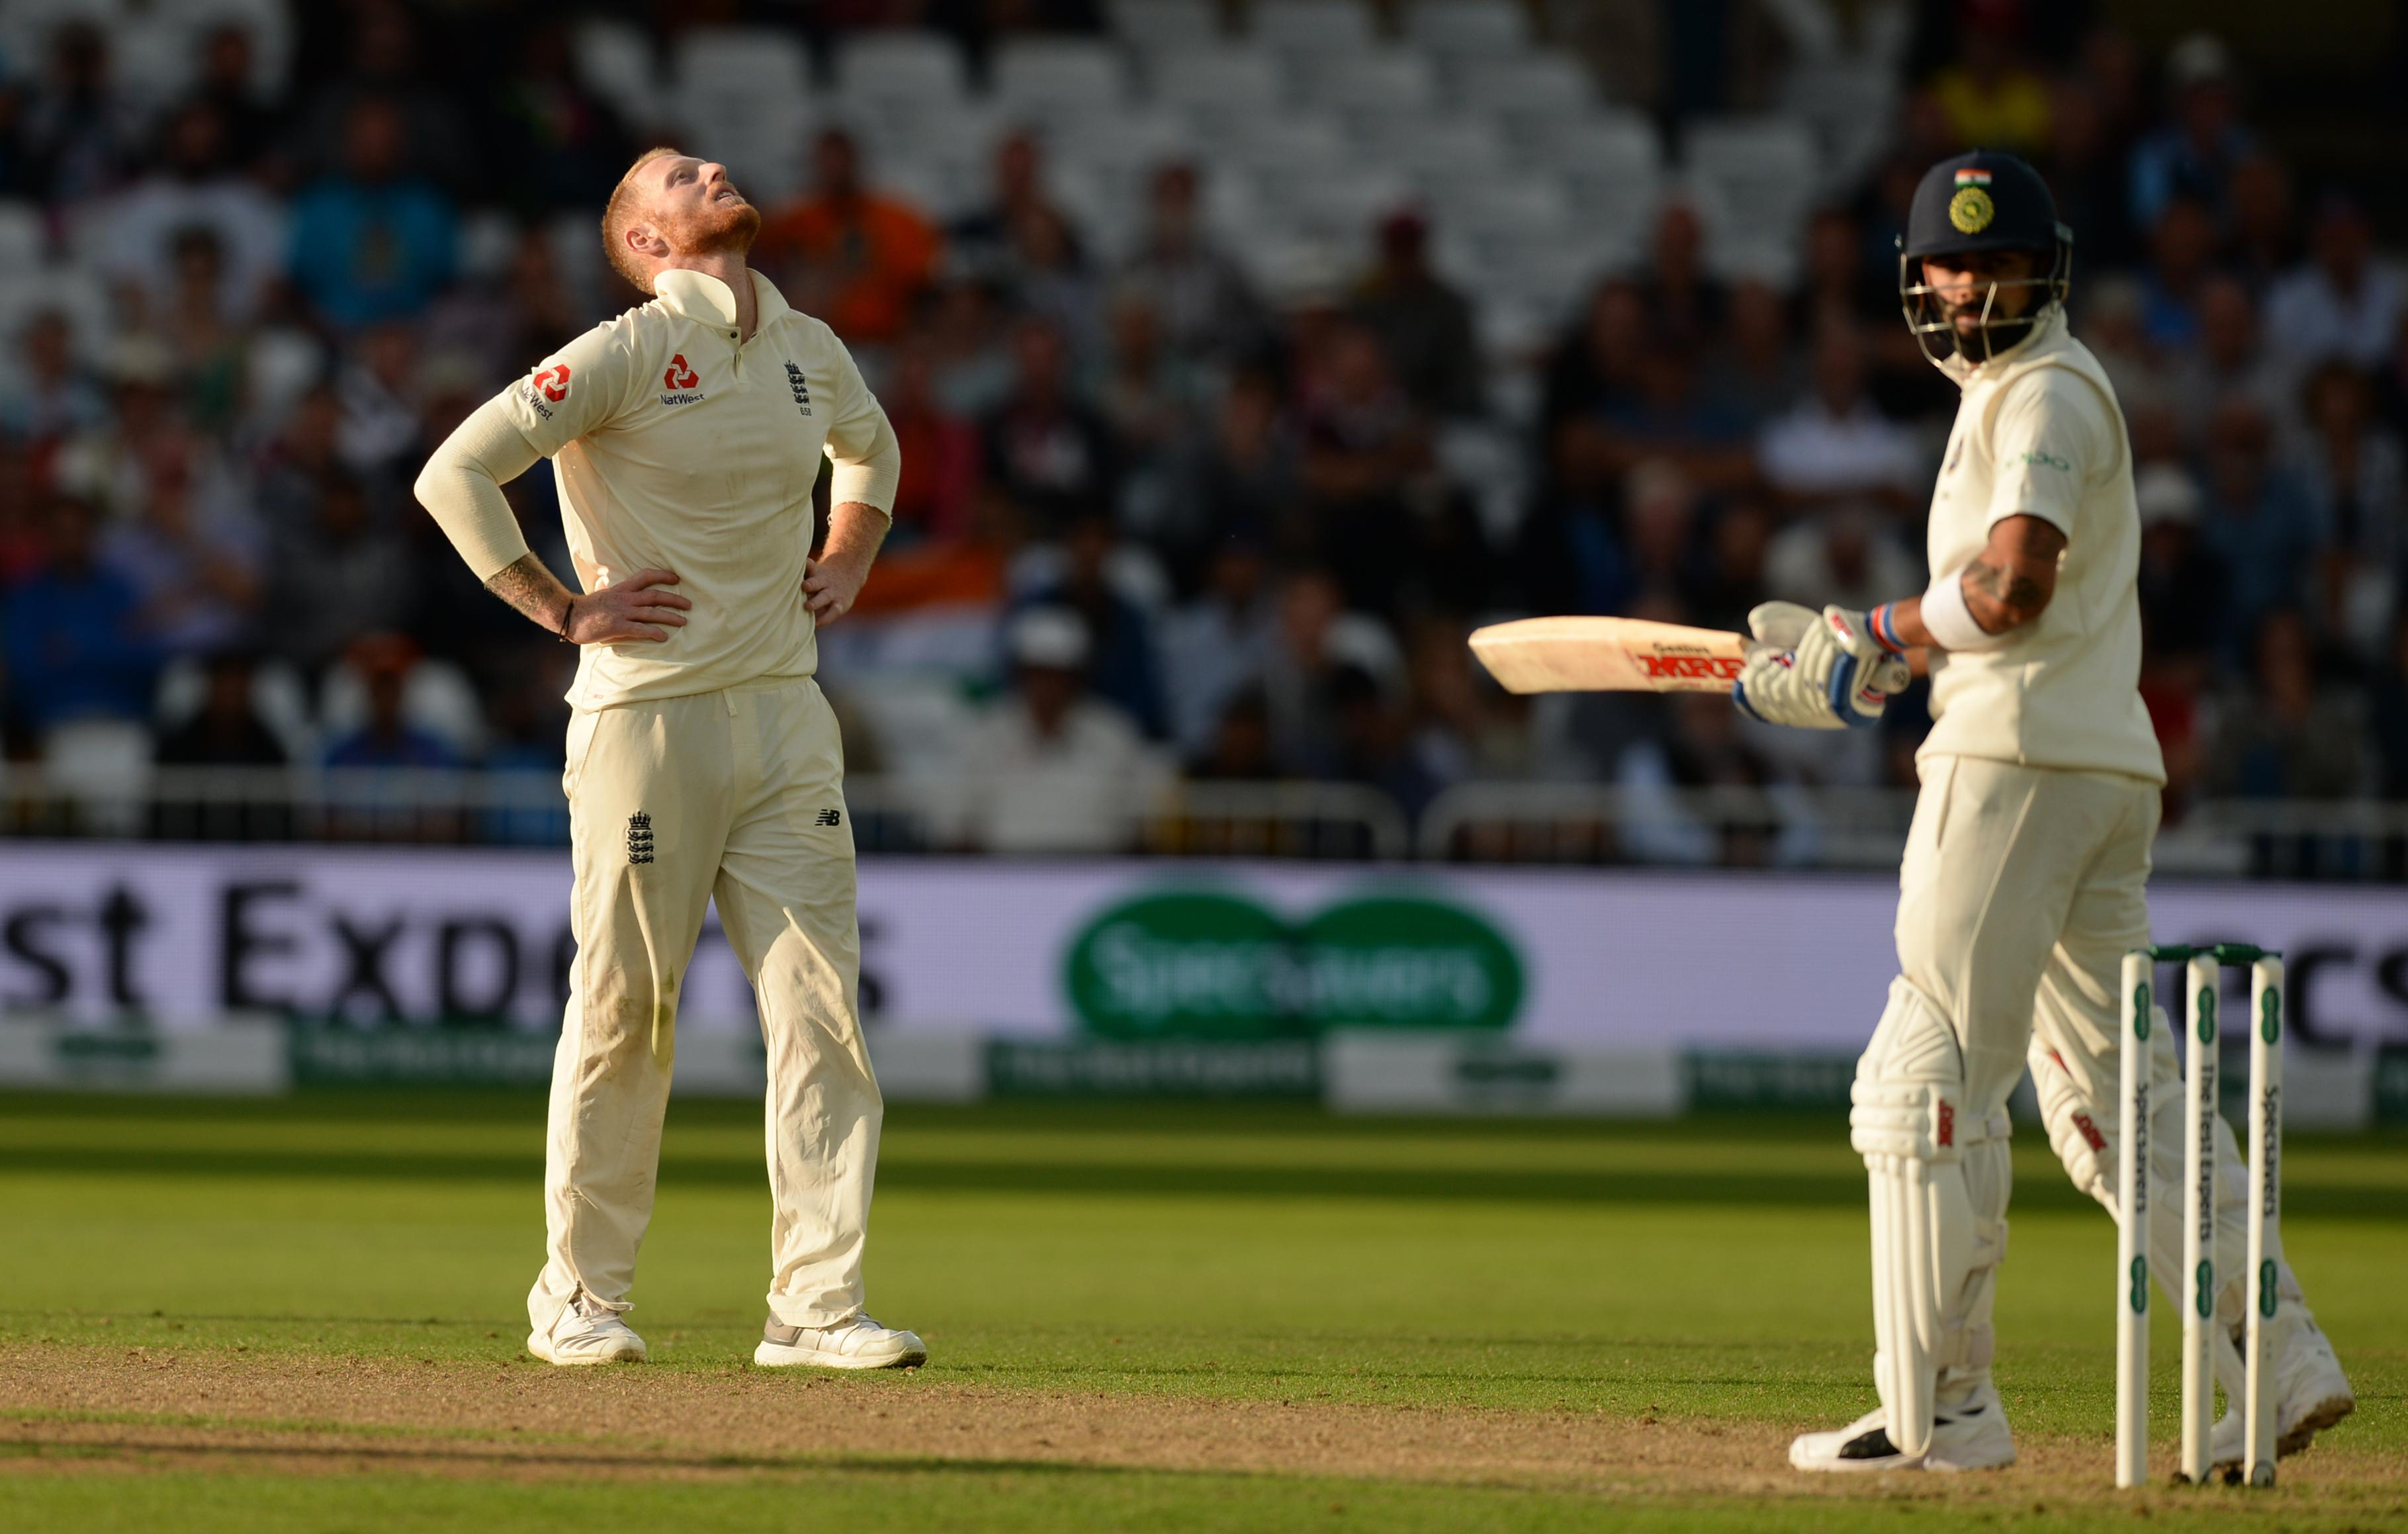 It proved a difficult day with bat and ball for Ben Stokes